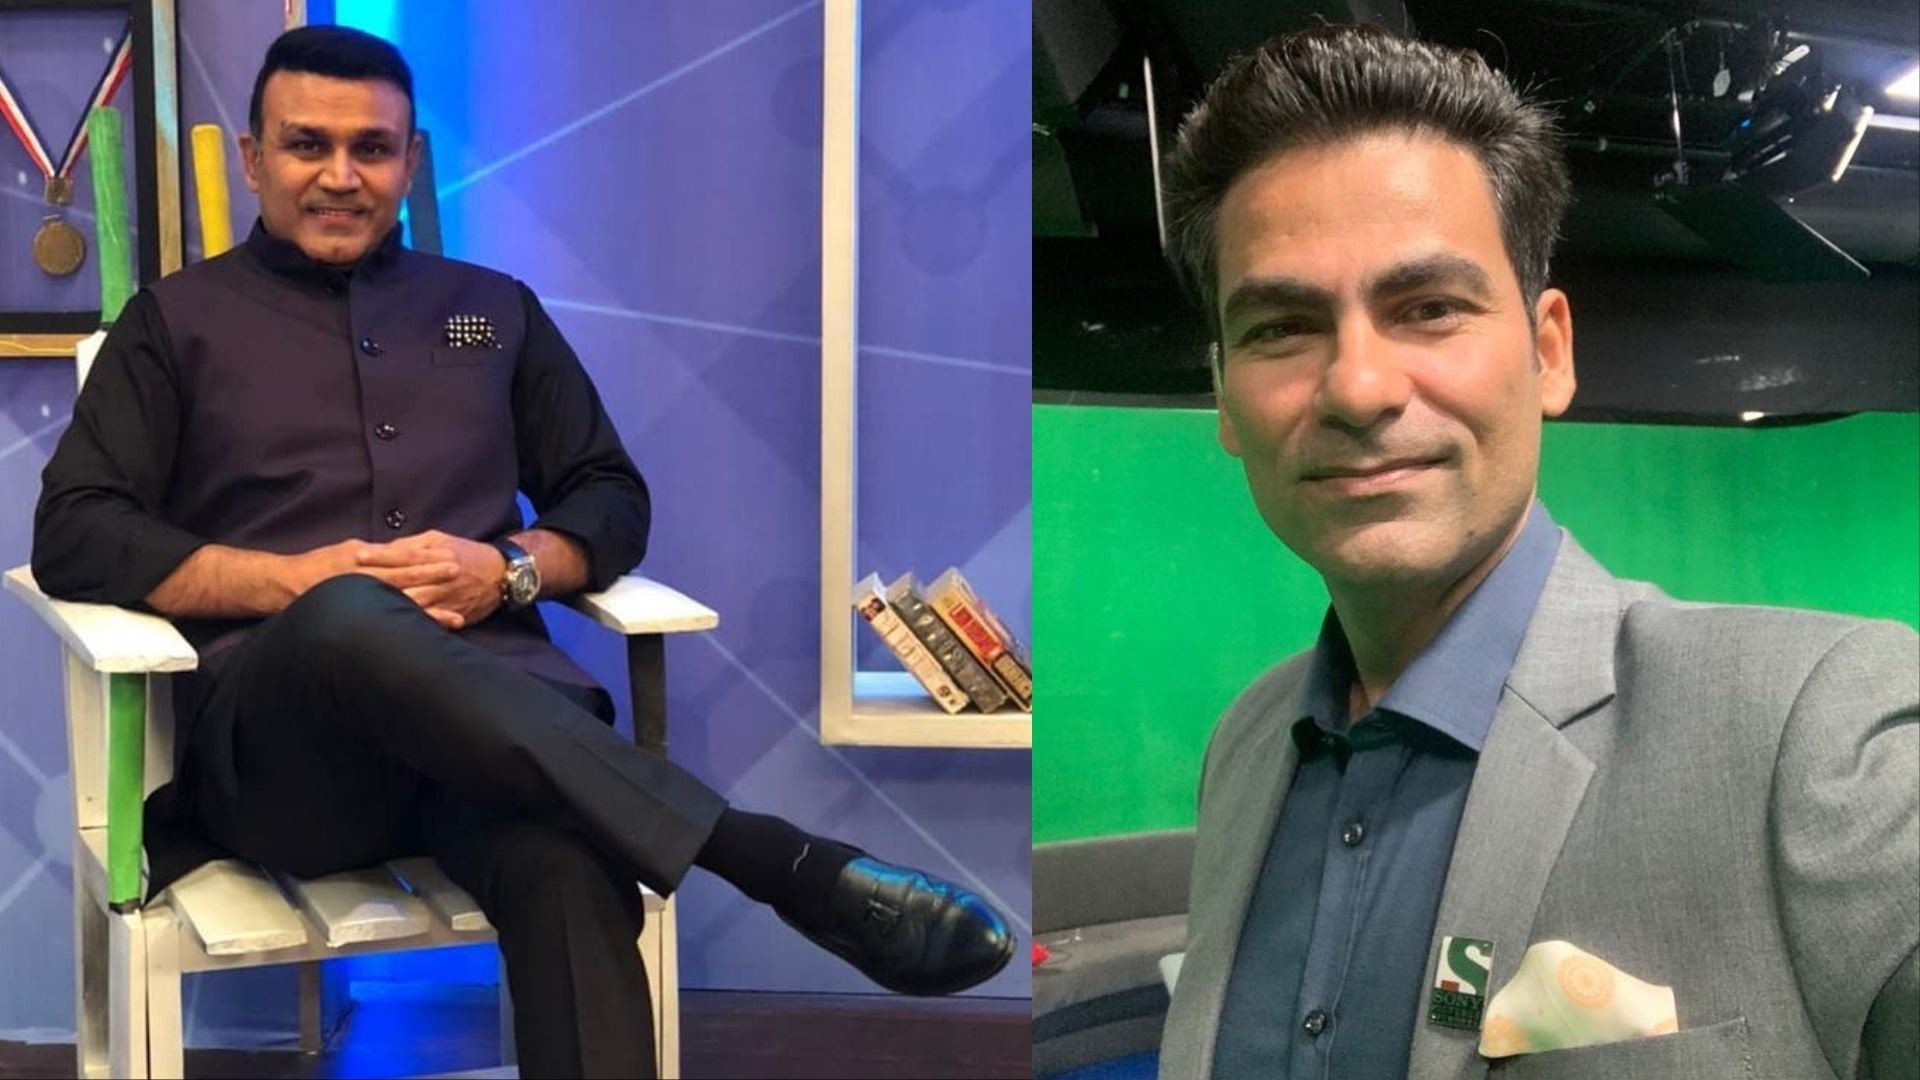 The Kapil Sharma Show: Throwback To The Time When Virender Sehwag Taunted Mohammad Kaif